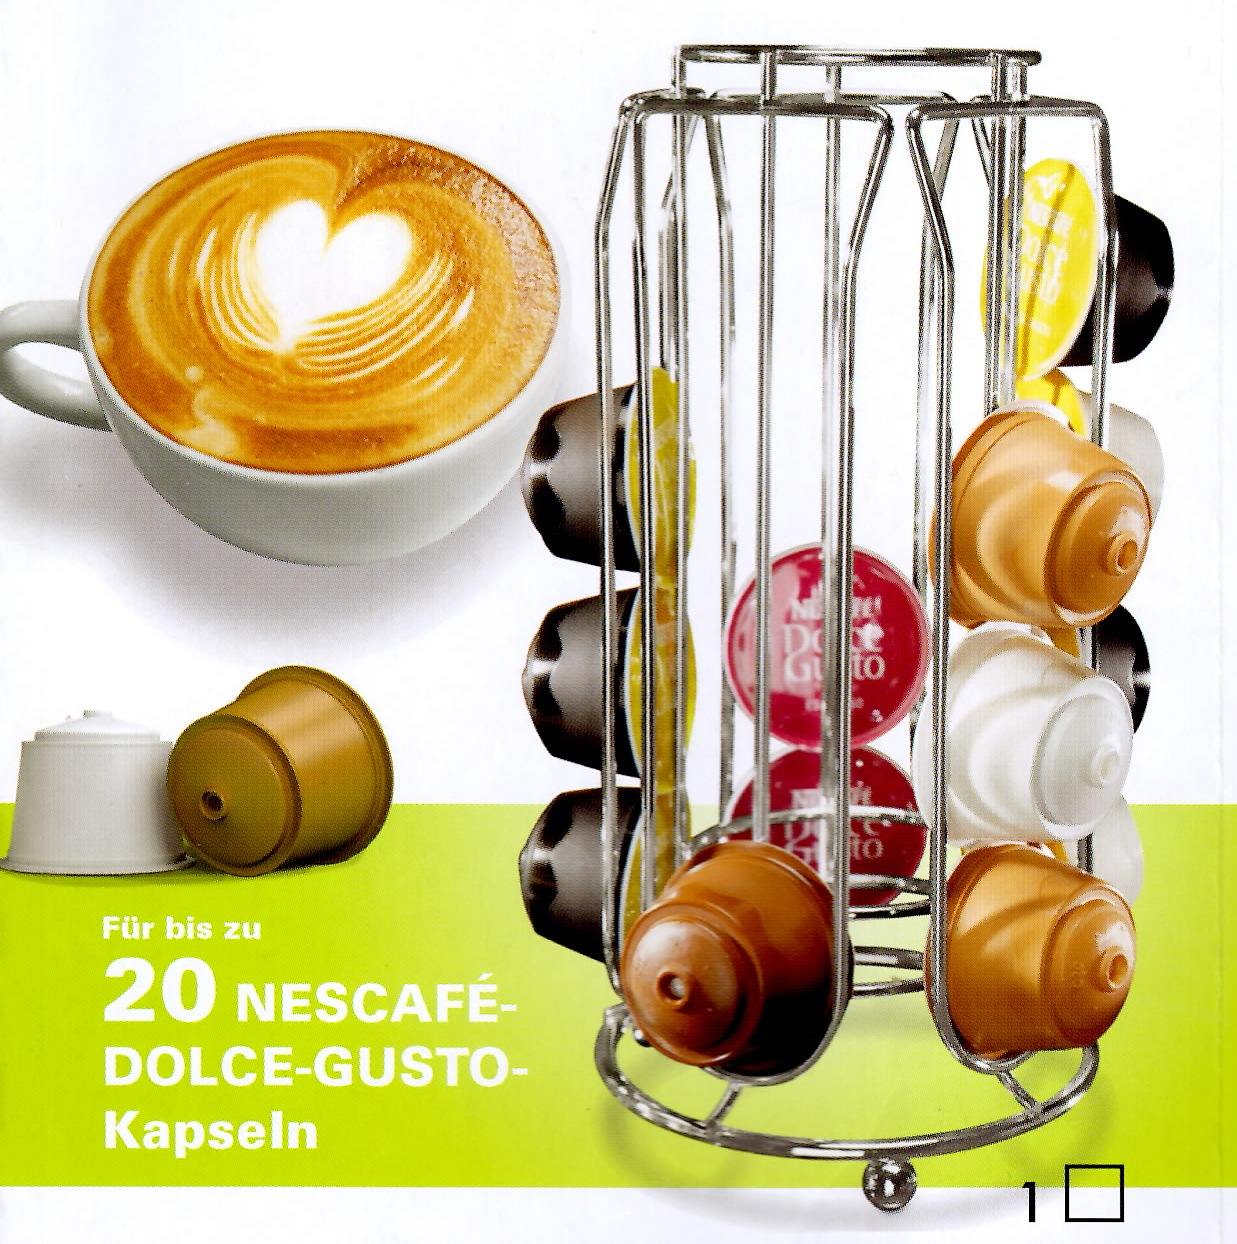 nescafe dolce gusto kaffee kapselhalter kapsel halter spender kapselst nder. Black Bedroom Furniture Sets. Home Design Ideas